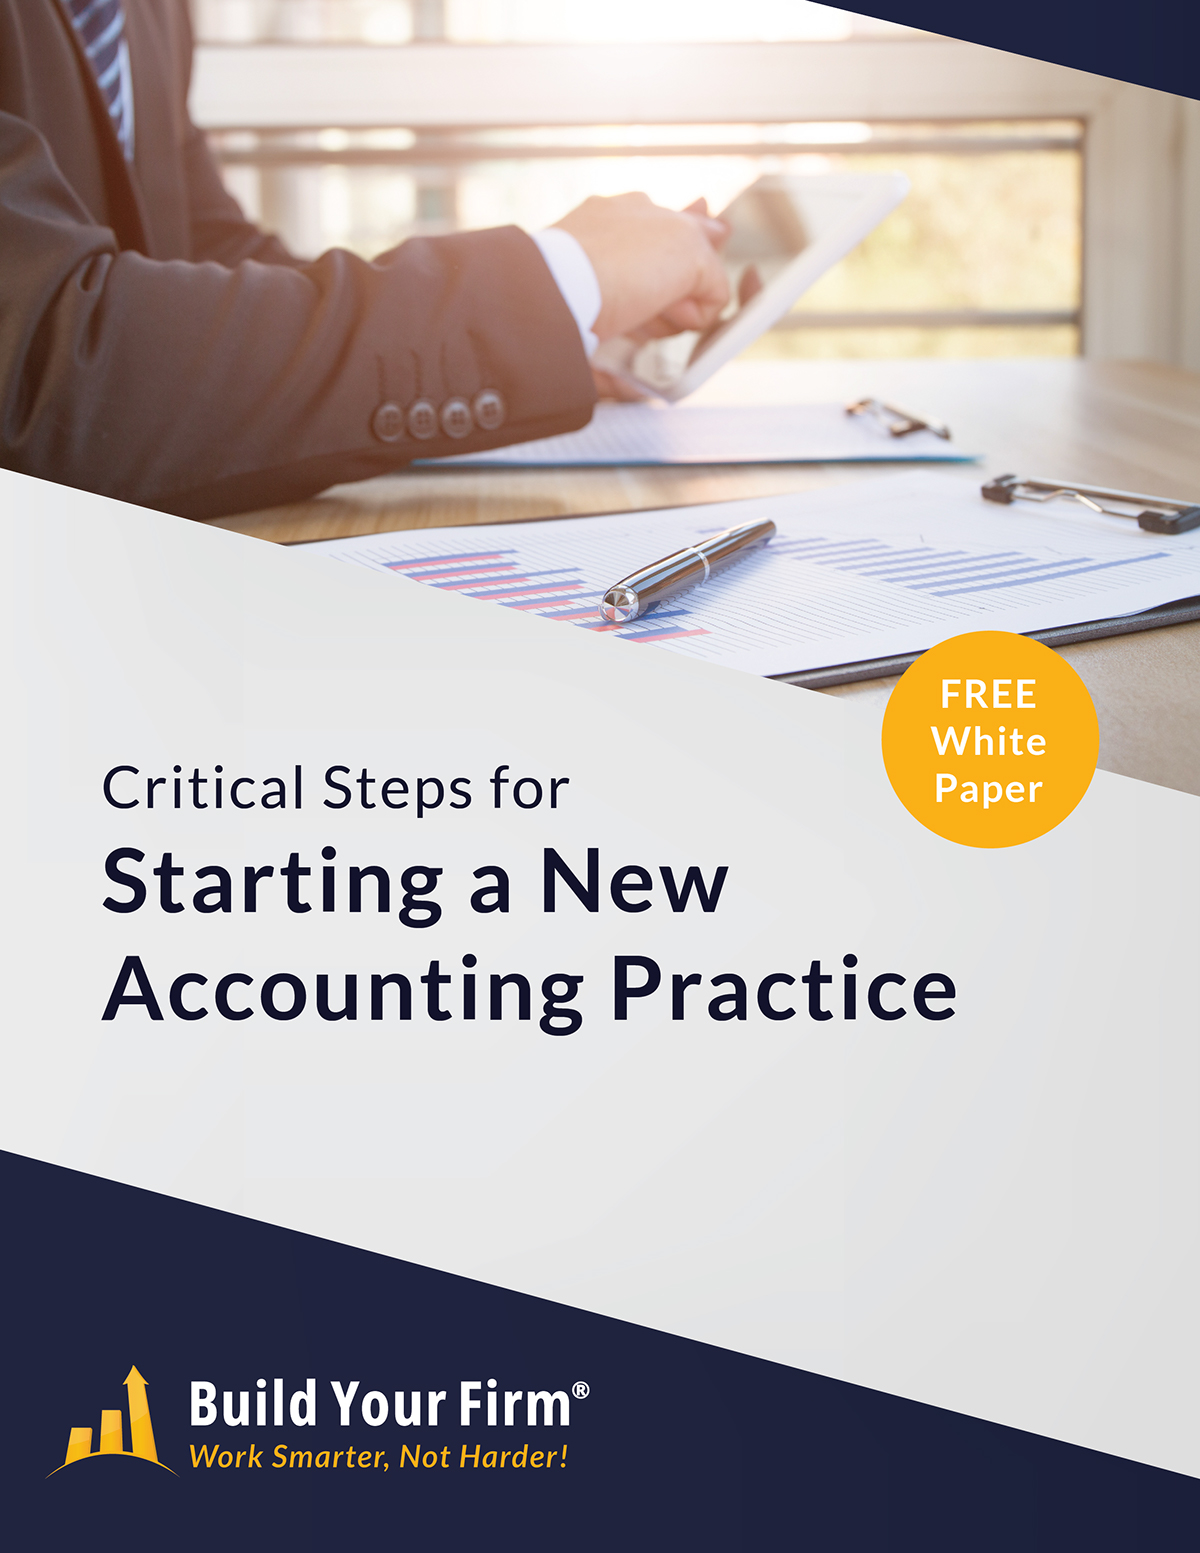 How to Build an Accounting Practice recommendations